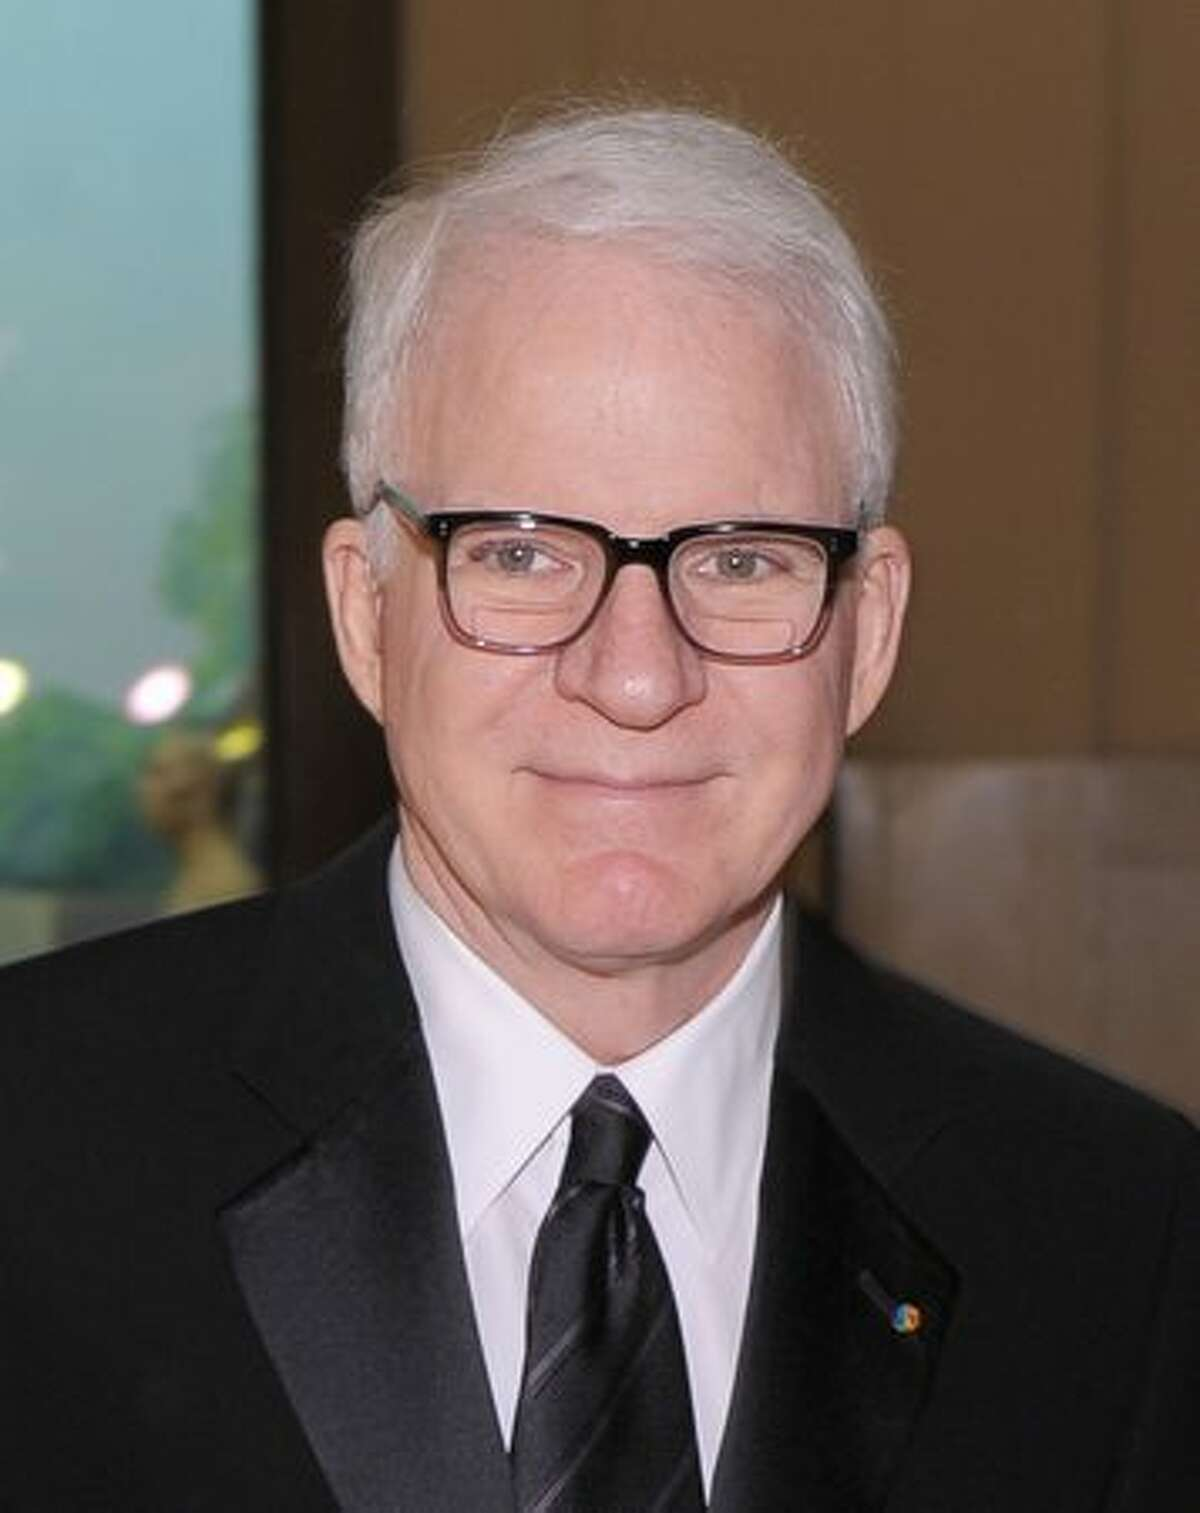 Actor Steve Martin attends the American Museum of Natural History's 2010 Museum Gala at the American Museum of Natural History in New York City.